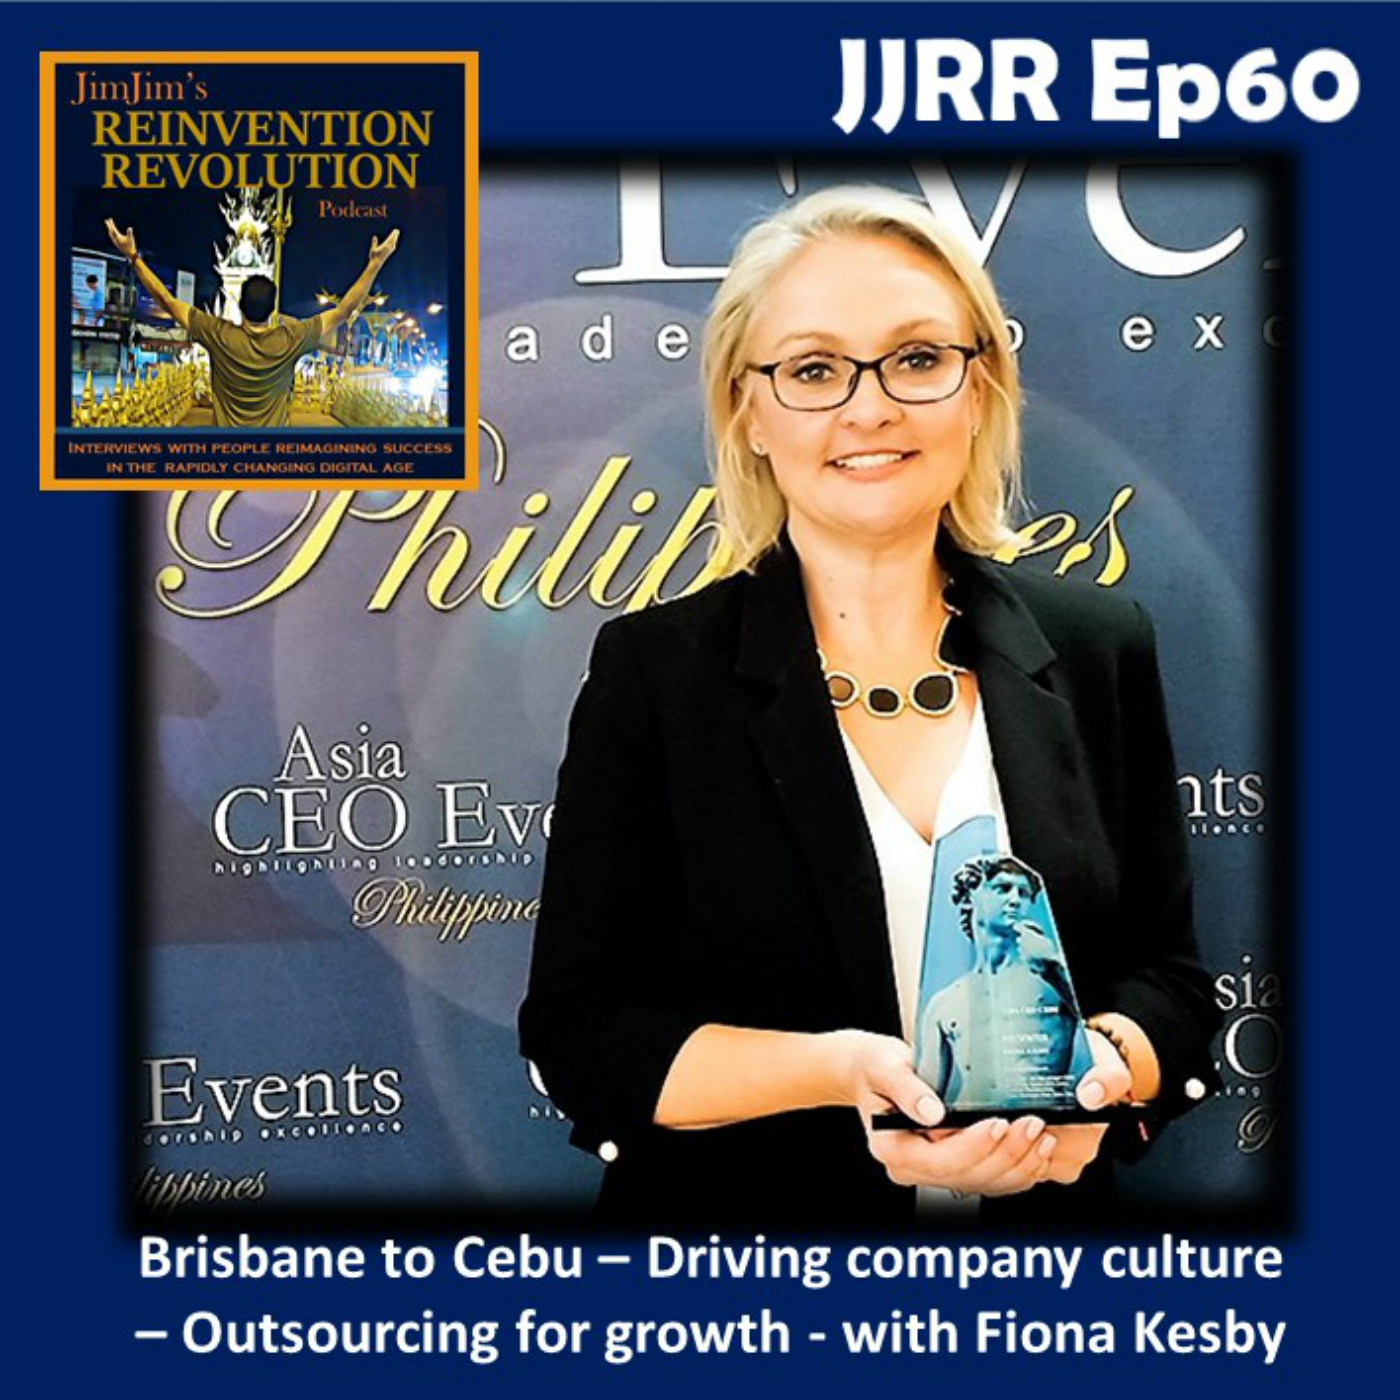 JJRR 60 Brisbane to Cebu – Driving company culture – Outsourcing for growth